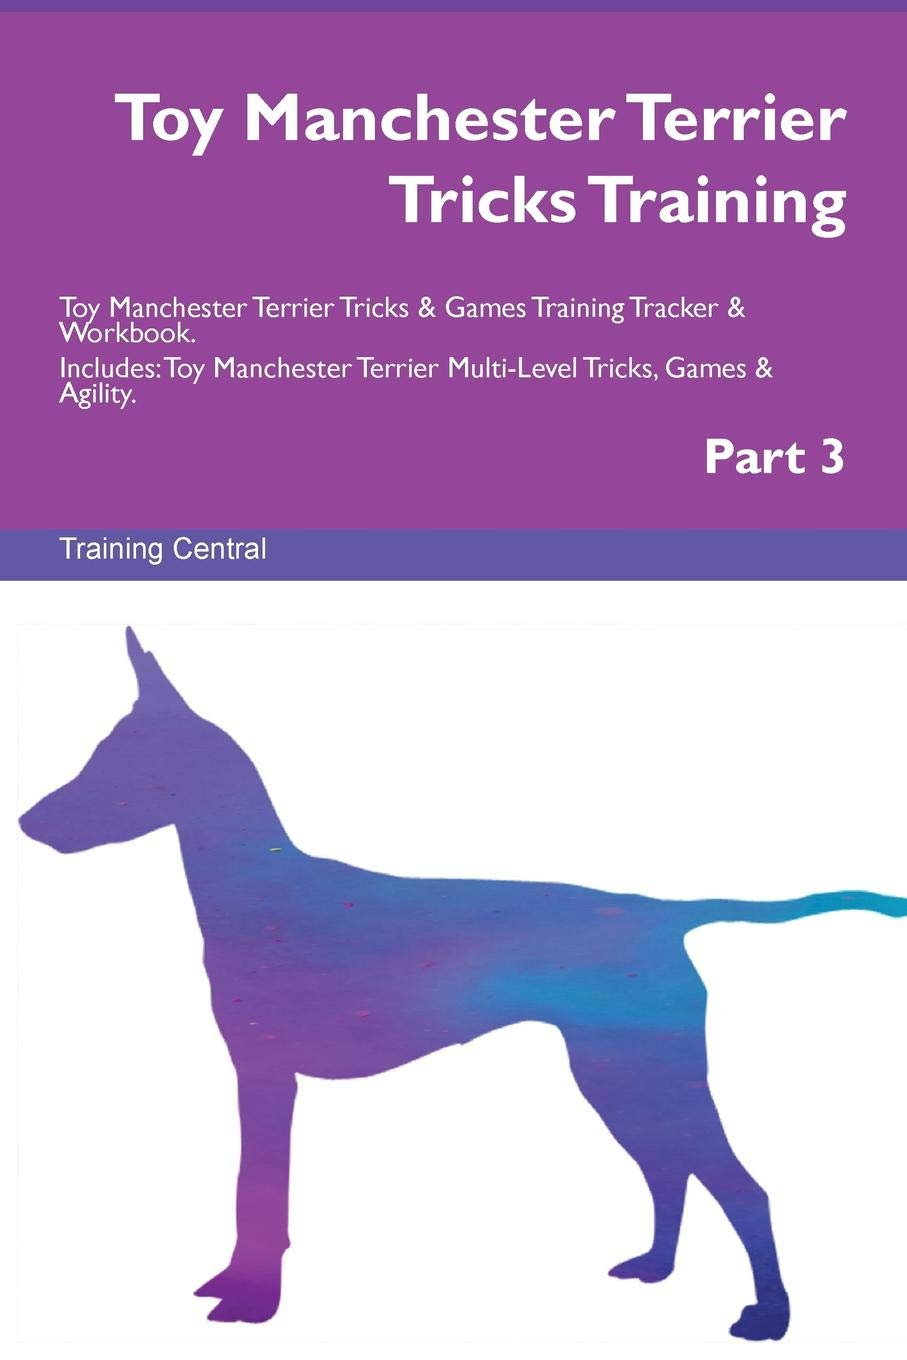 Download Toy Manchester Terrier Tricks Training Toy Manchester Terrier Tricks & Games Training Tracker & Workbook.  Includes: Toy Manchester Terrier Multi-Level Tricks, Games & Agility. Part 3 pdf epub